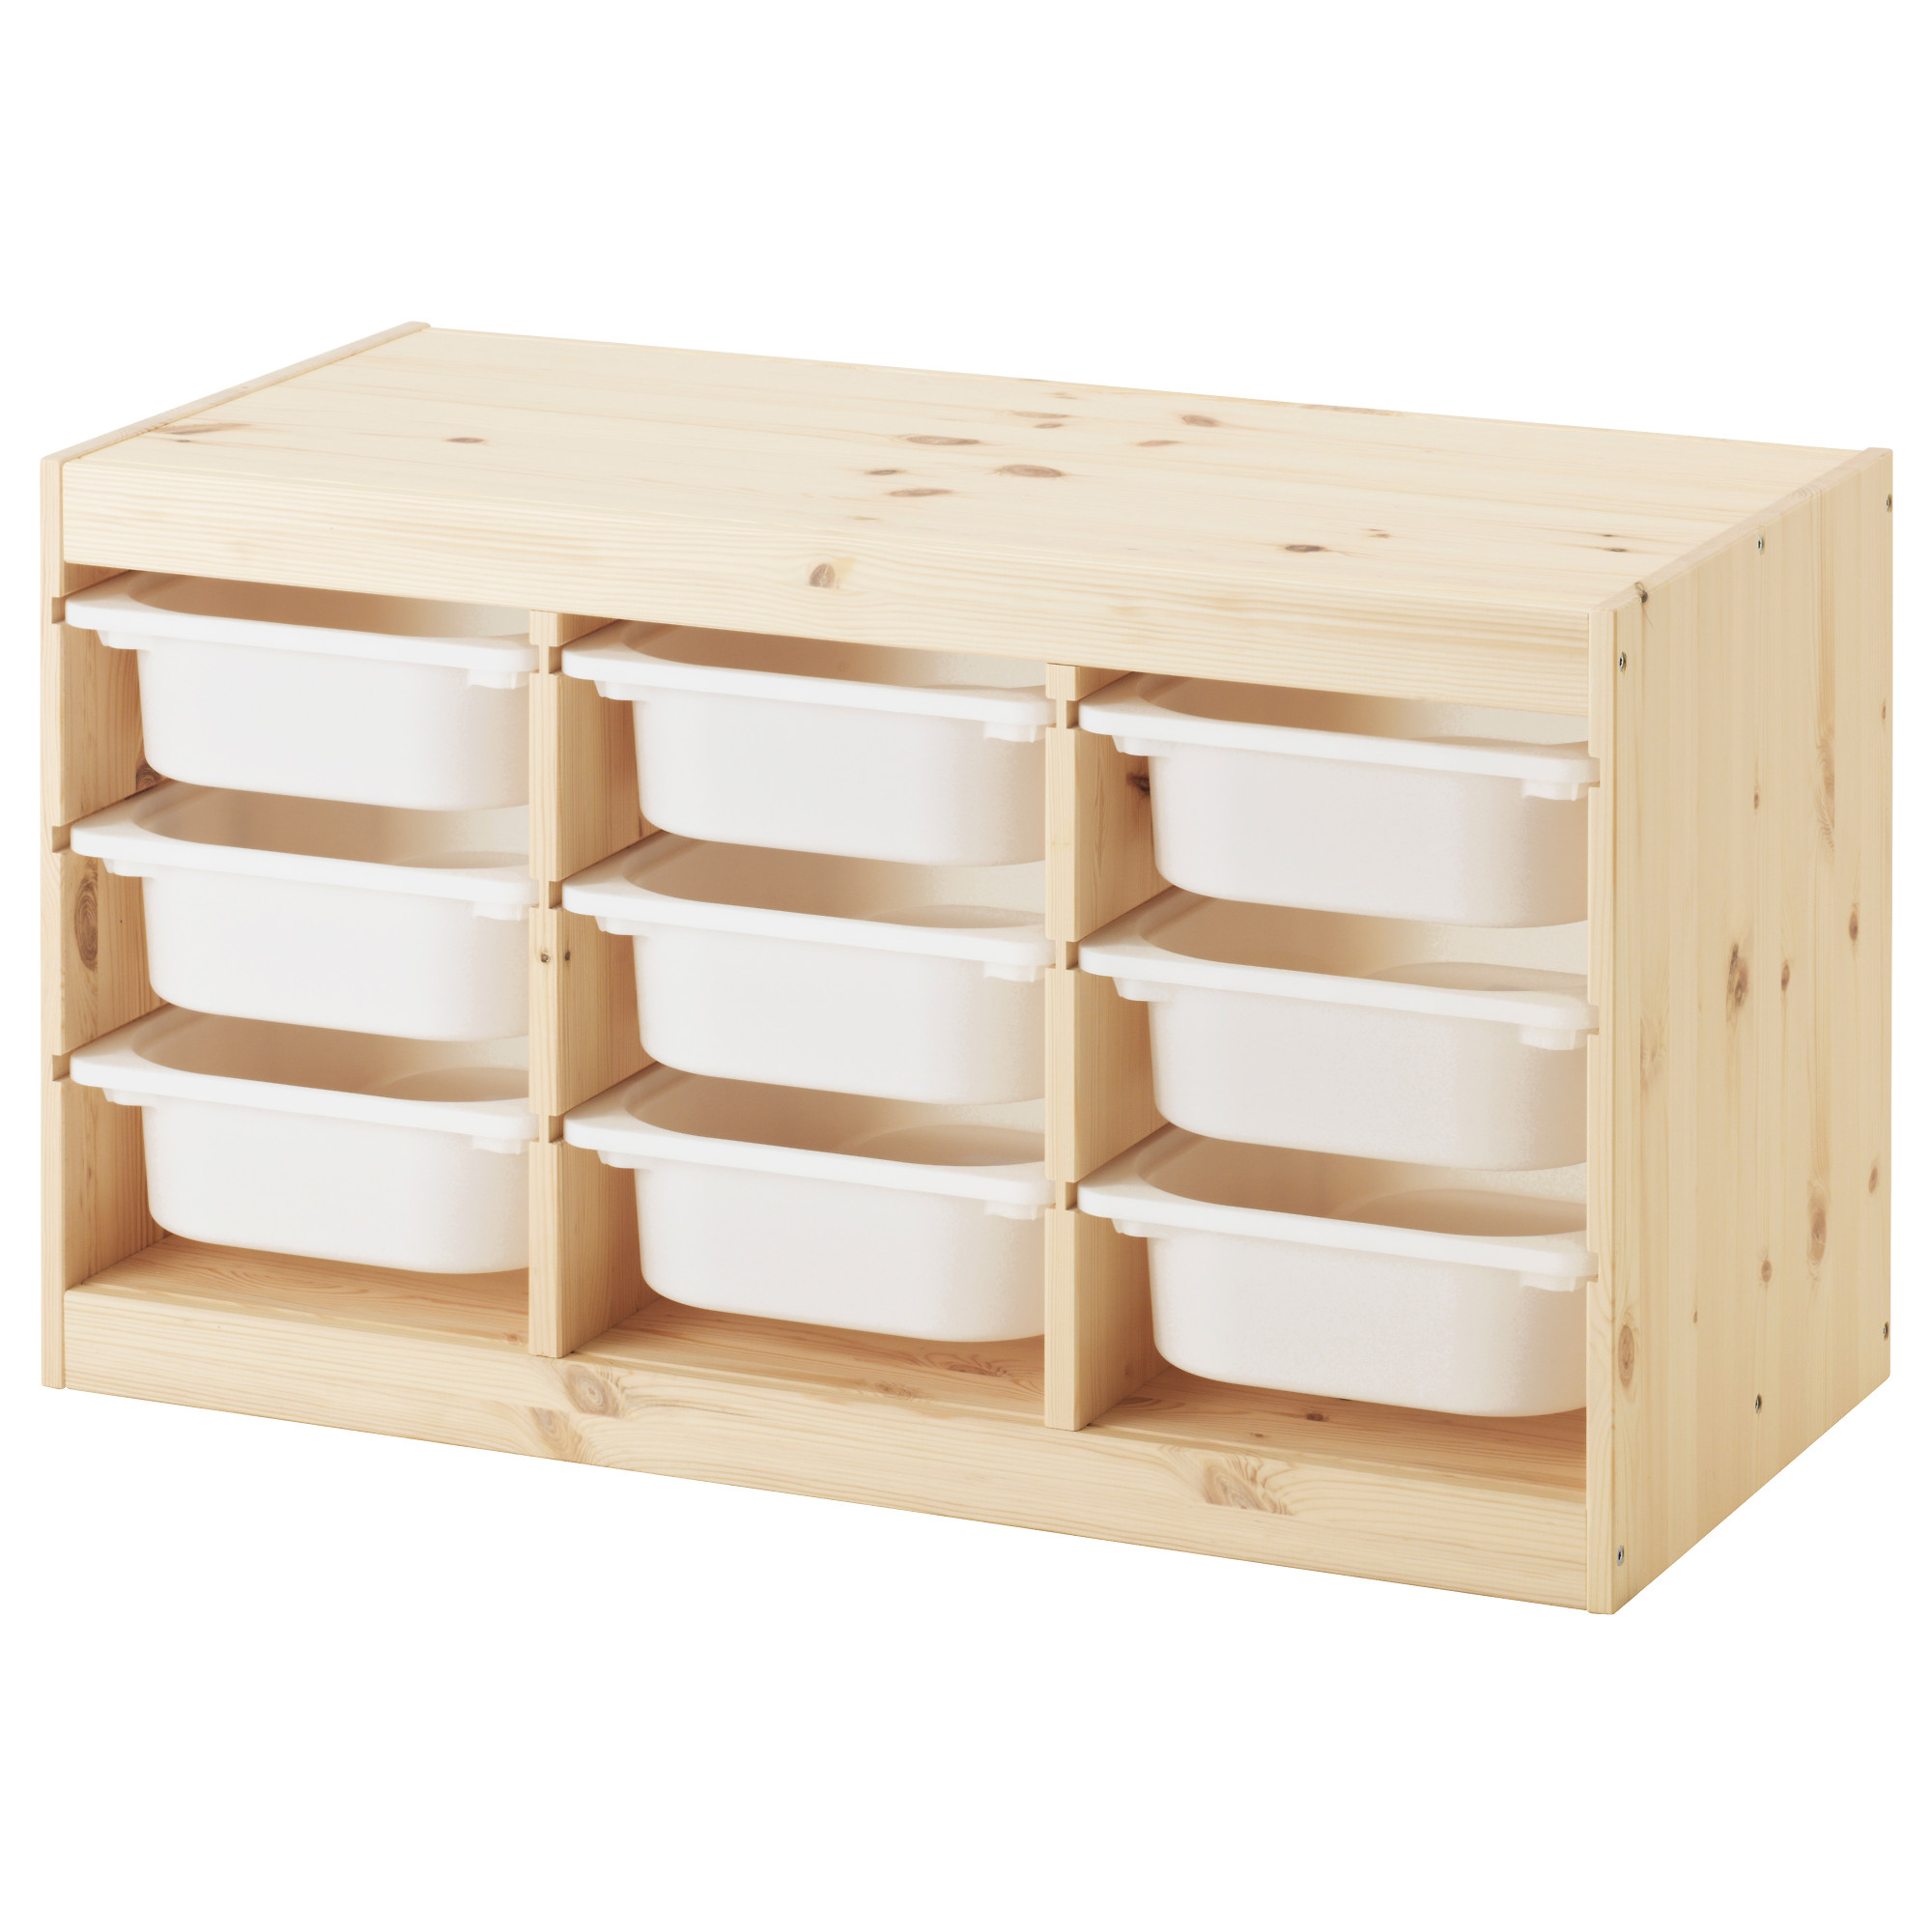 Ikea Toy Organizer Trofast Storage Combination With Boxes Light White Stained Pine